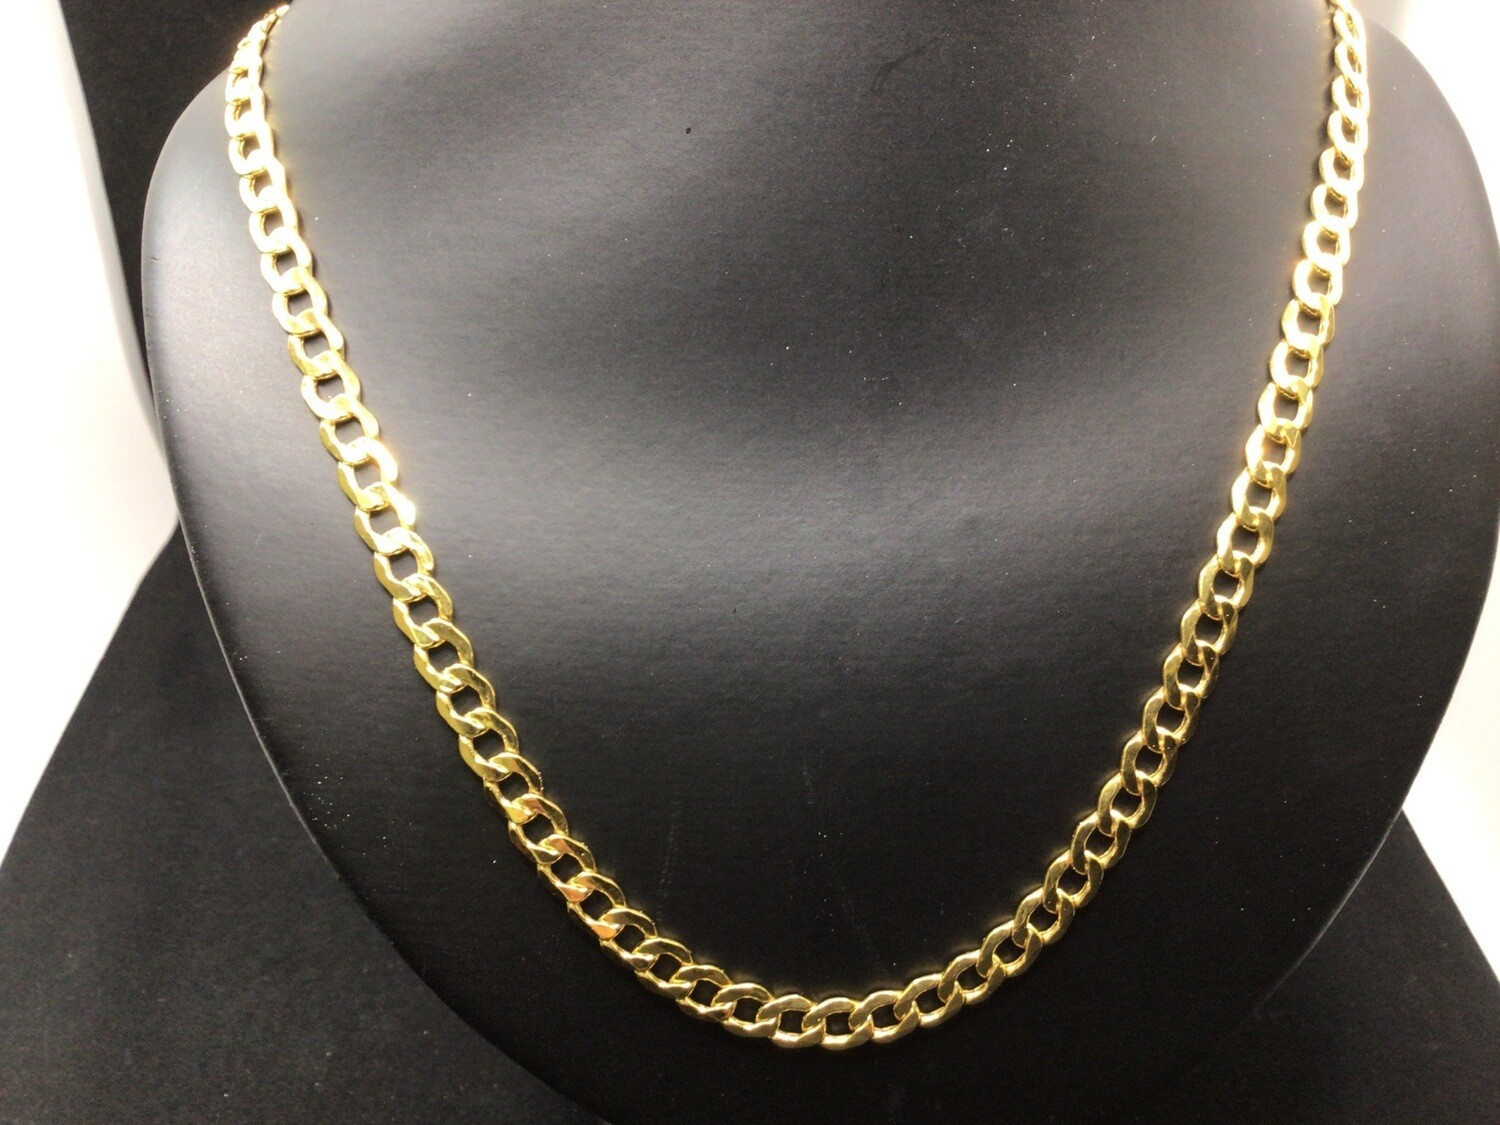 """22 """" 14 KT. SOLID LITE CURB LINK CHAIN. 7 MM WIDE .THERE'S NOTHING LIKE THE RICH LOOK OF REAL GOLD ❗️"""